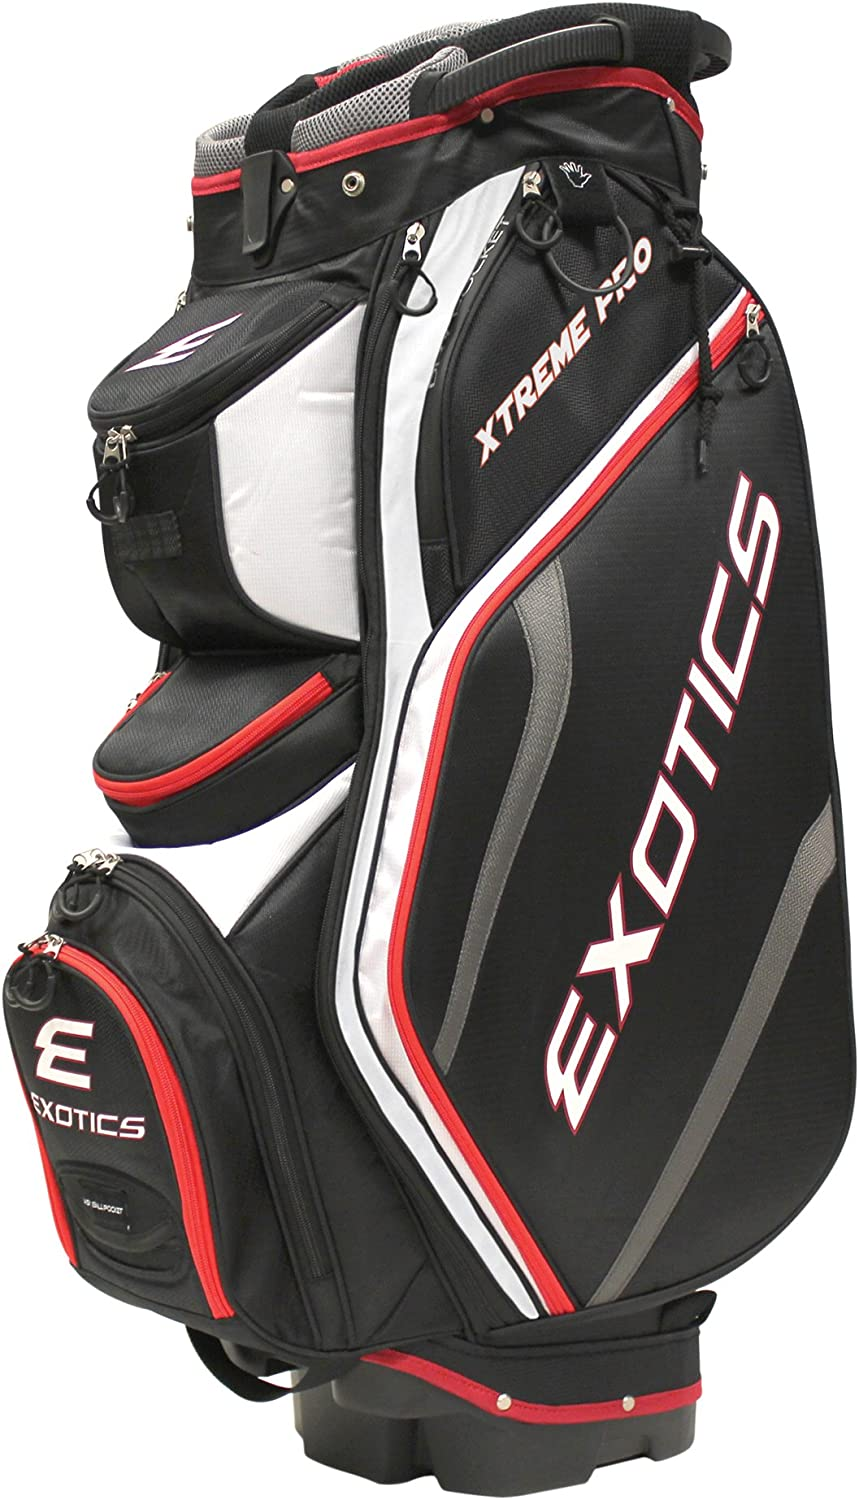 Tour Edge Exotics Extreme Pro Deluxe Cart Bag (Men's, Exotics Extreme Pro Deluxe Cart Bag Black White Red) ()